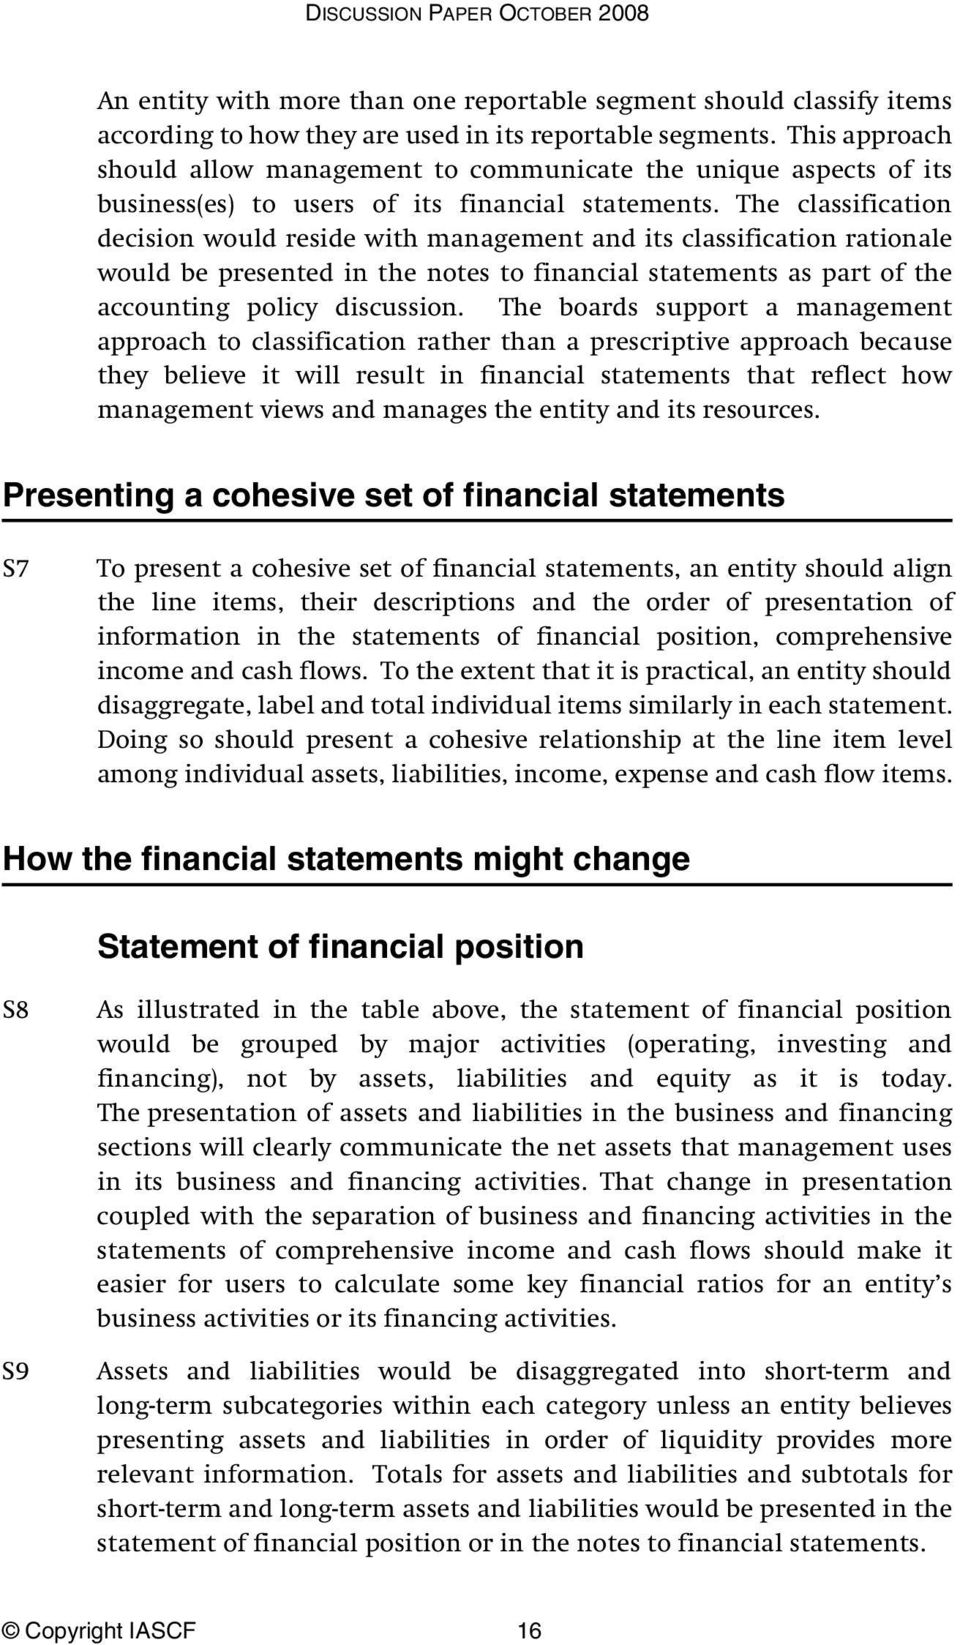 The classification decision would reside with management and its classification rationale would be presented in the notes to financial statements as part of the accounting policy discussion.